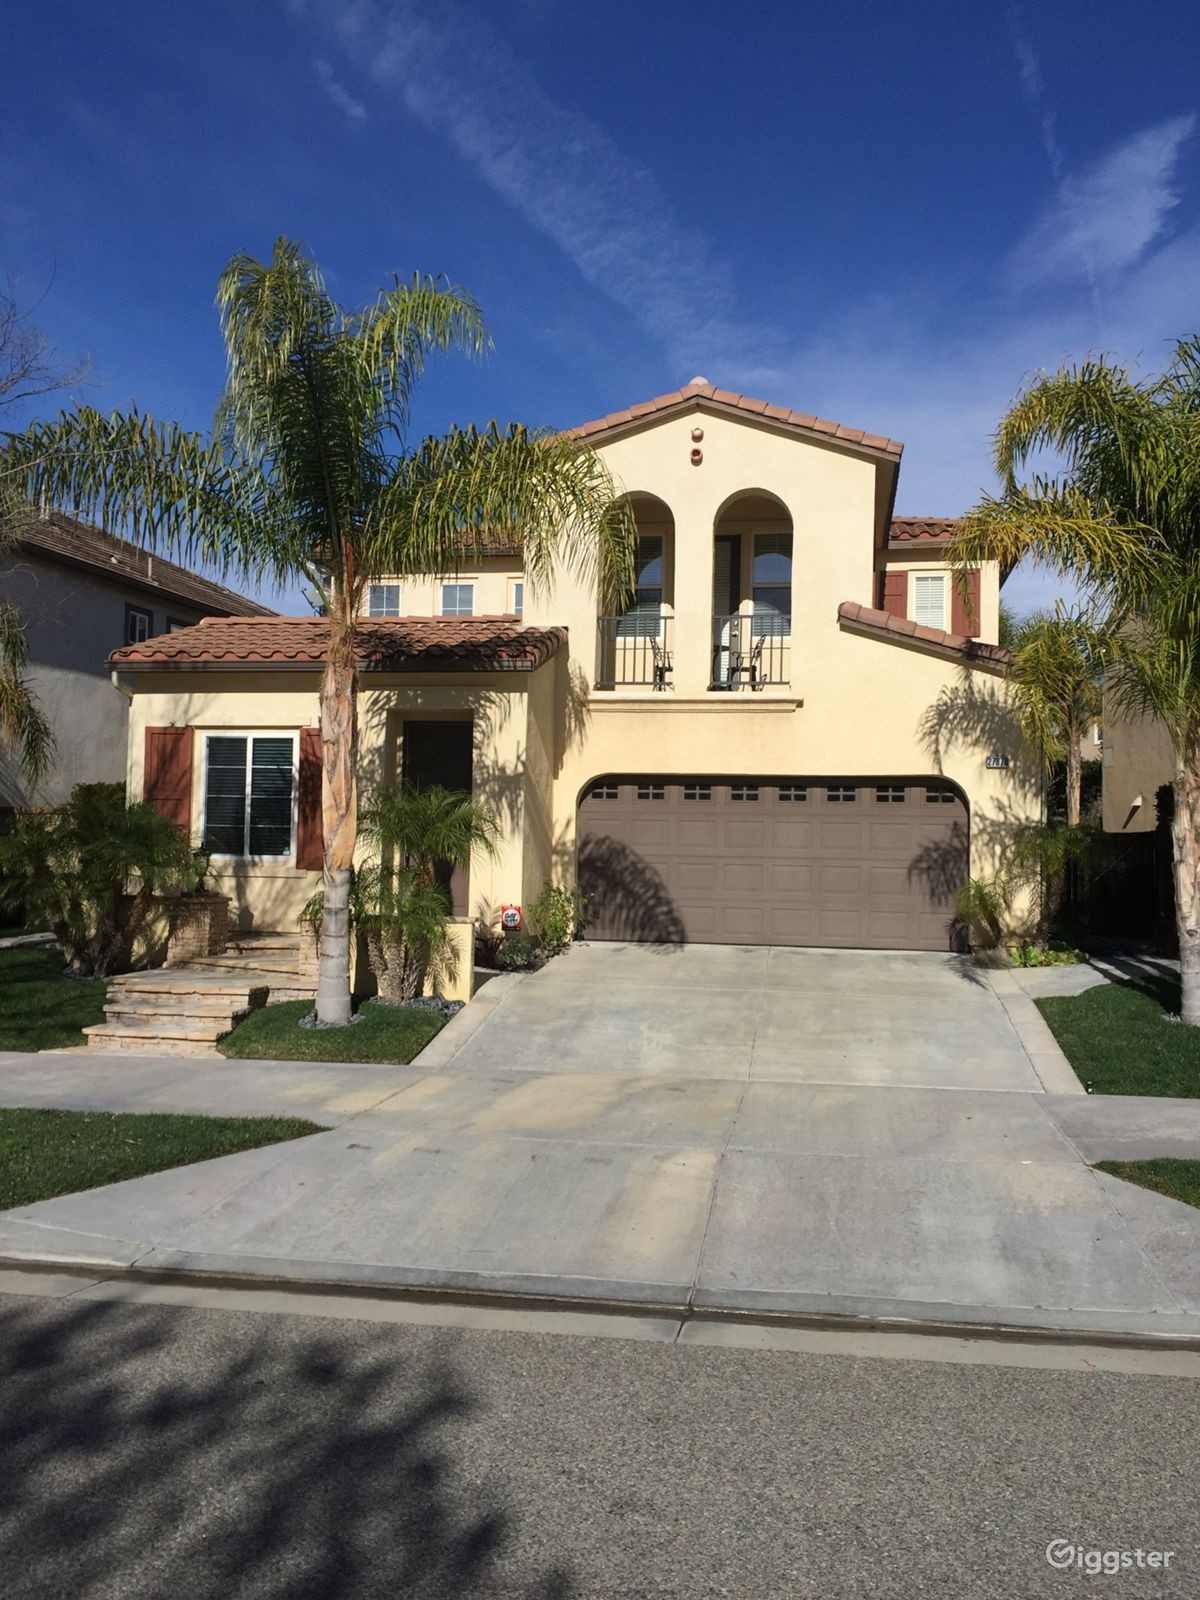 New Homes For Sale In Santa Clarita Ca